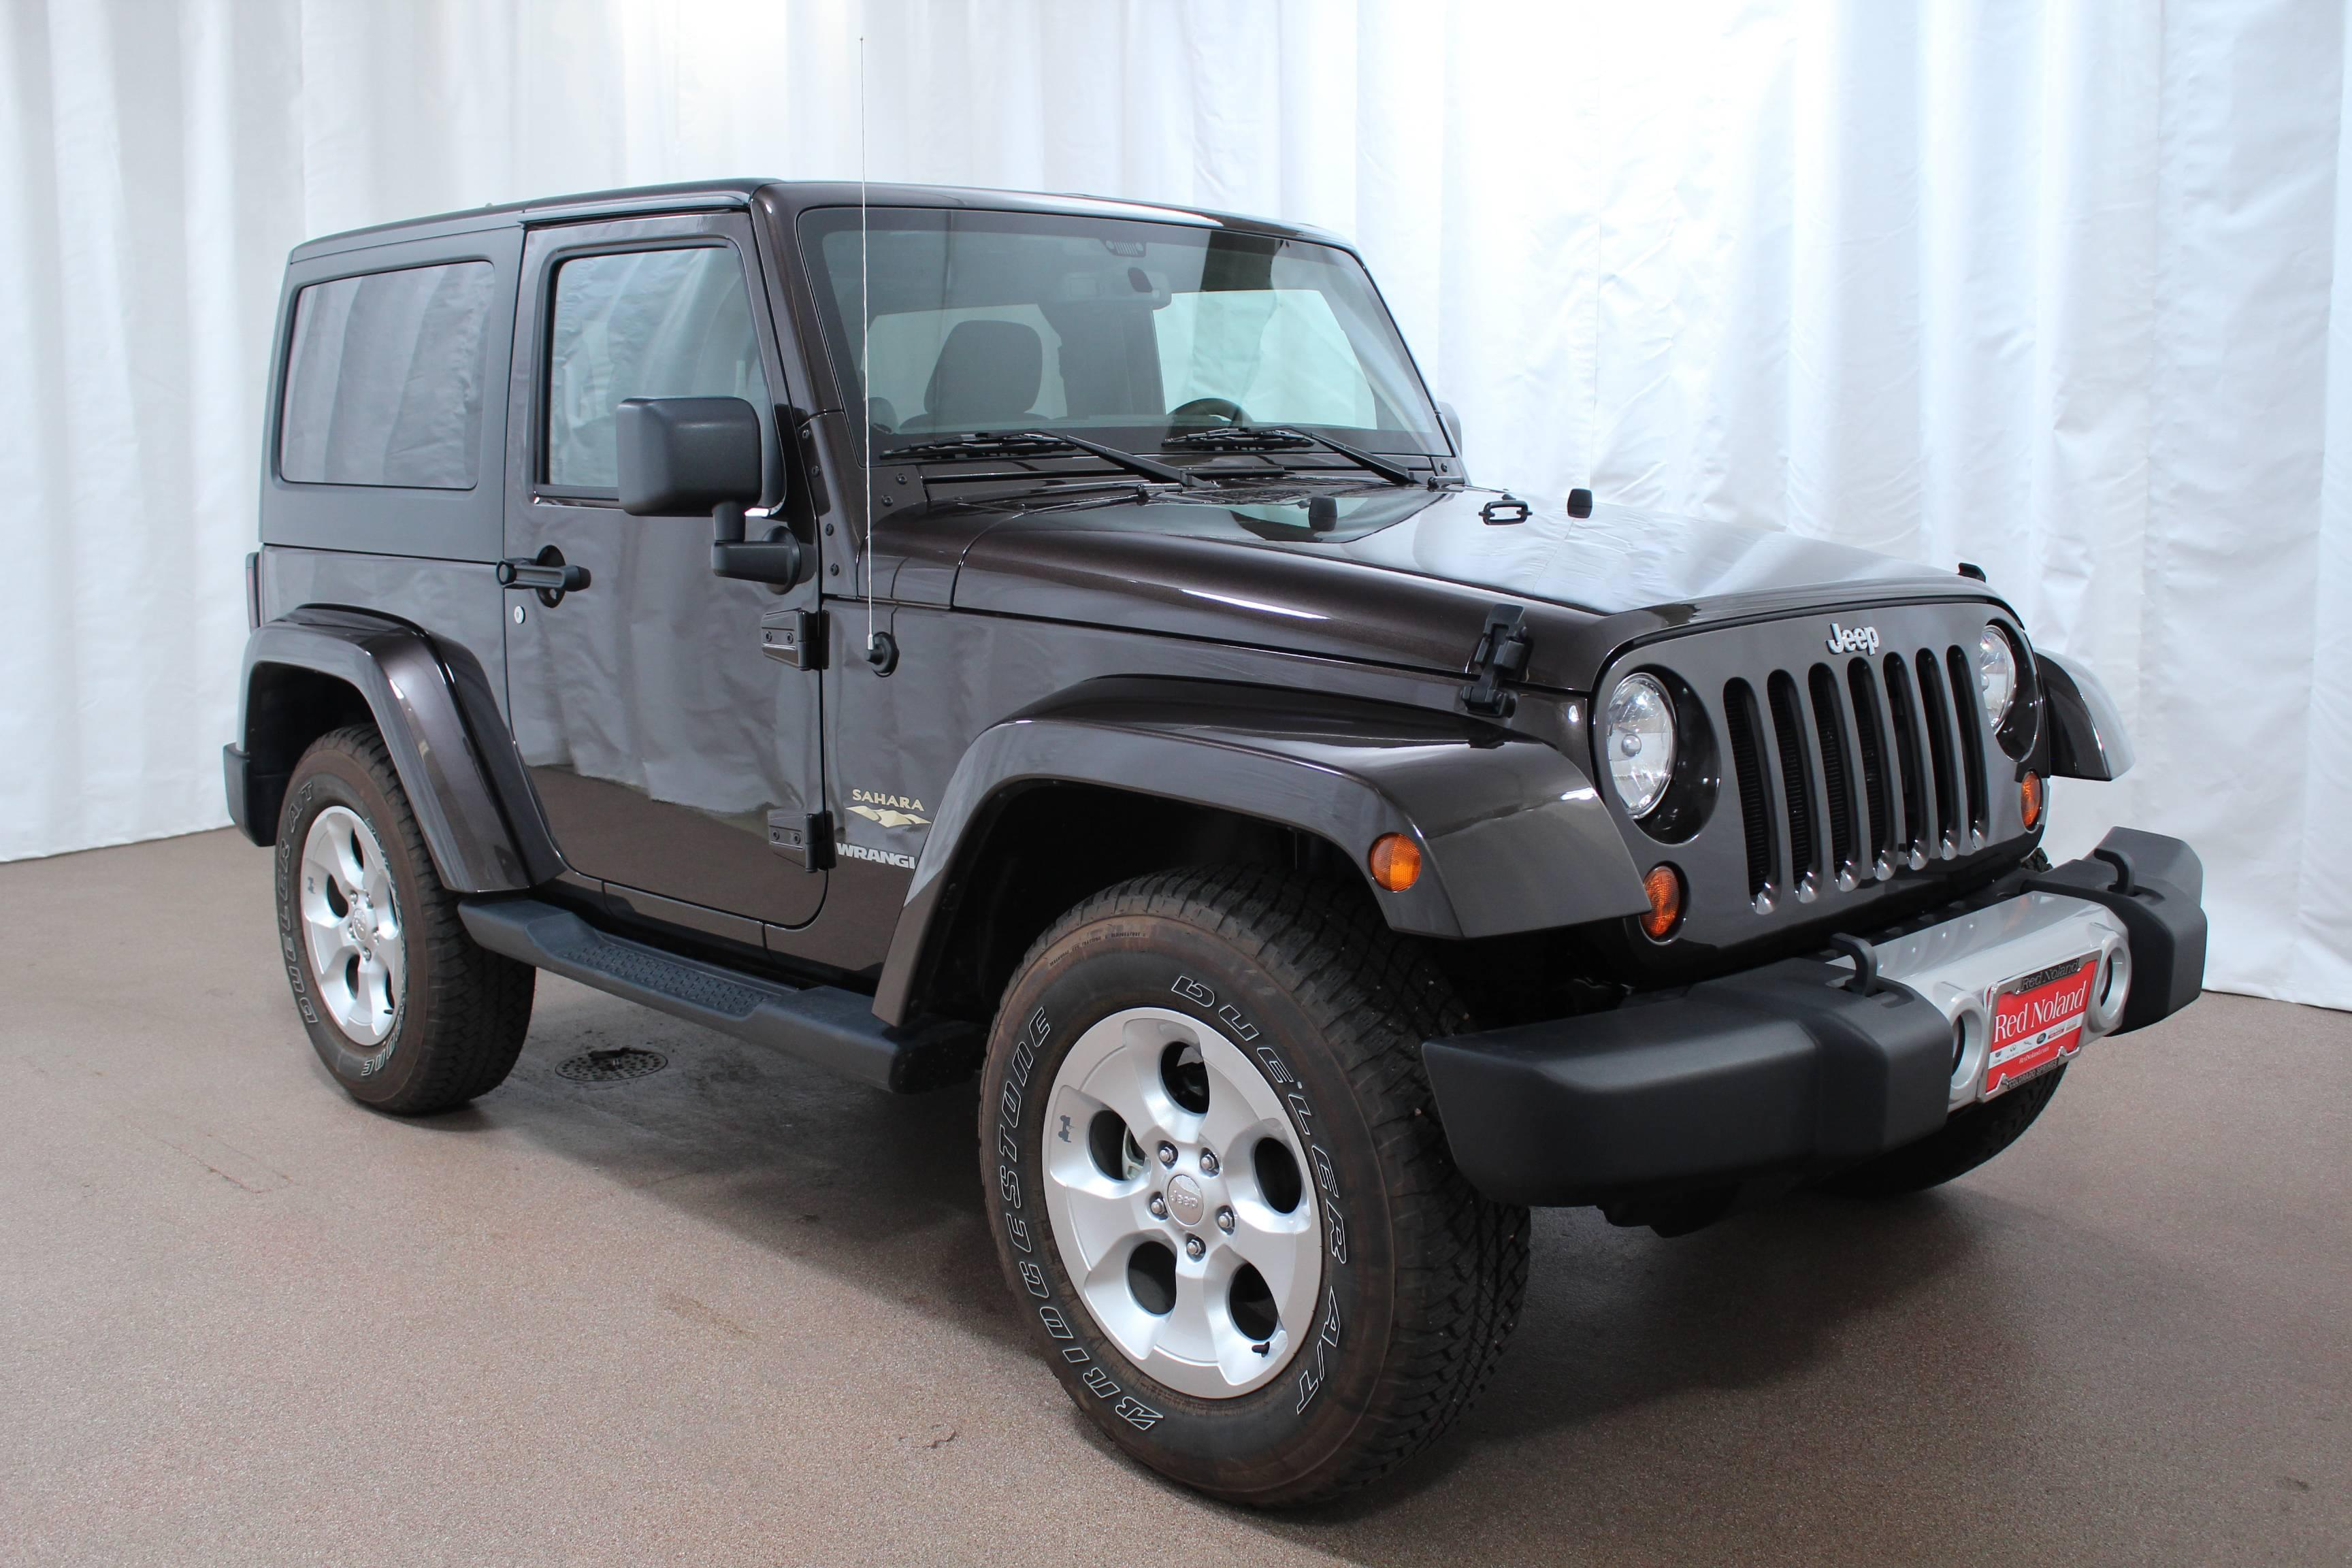 navigation pre unlimited wrangler rubicon anniversary jeep anniversaryhard owned trade inventory in top hard convertible topnavigationleatherwarrantyfresh